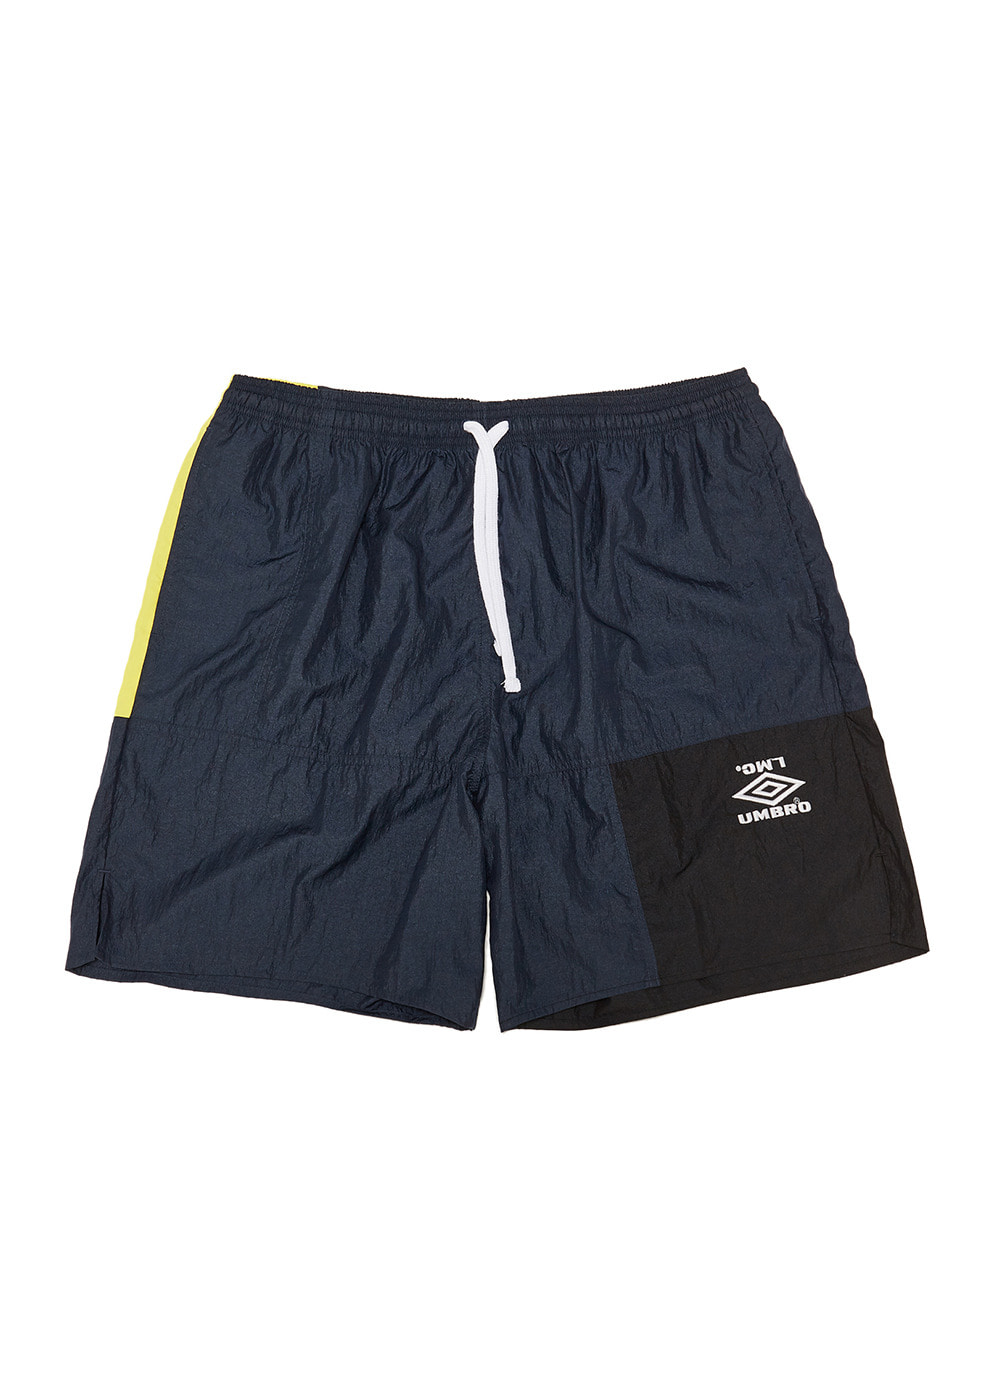 UMB X LMC RETRO SHORTS navy